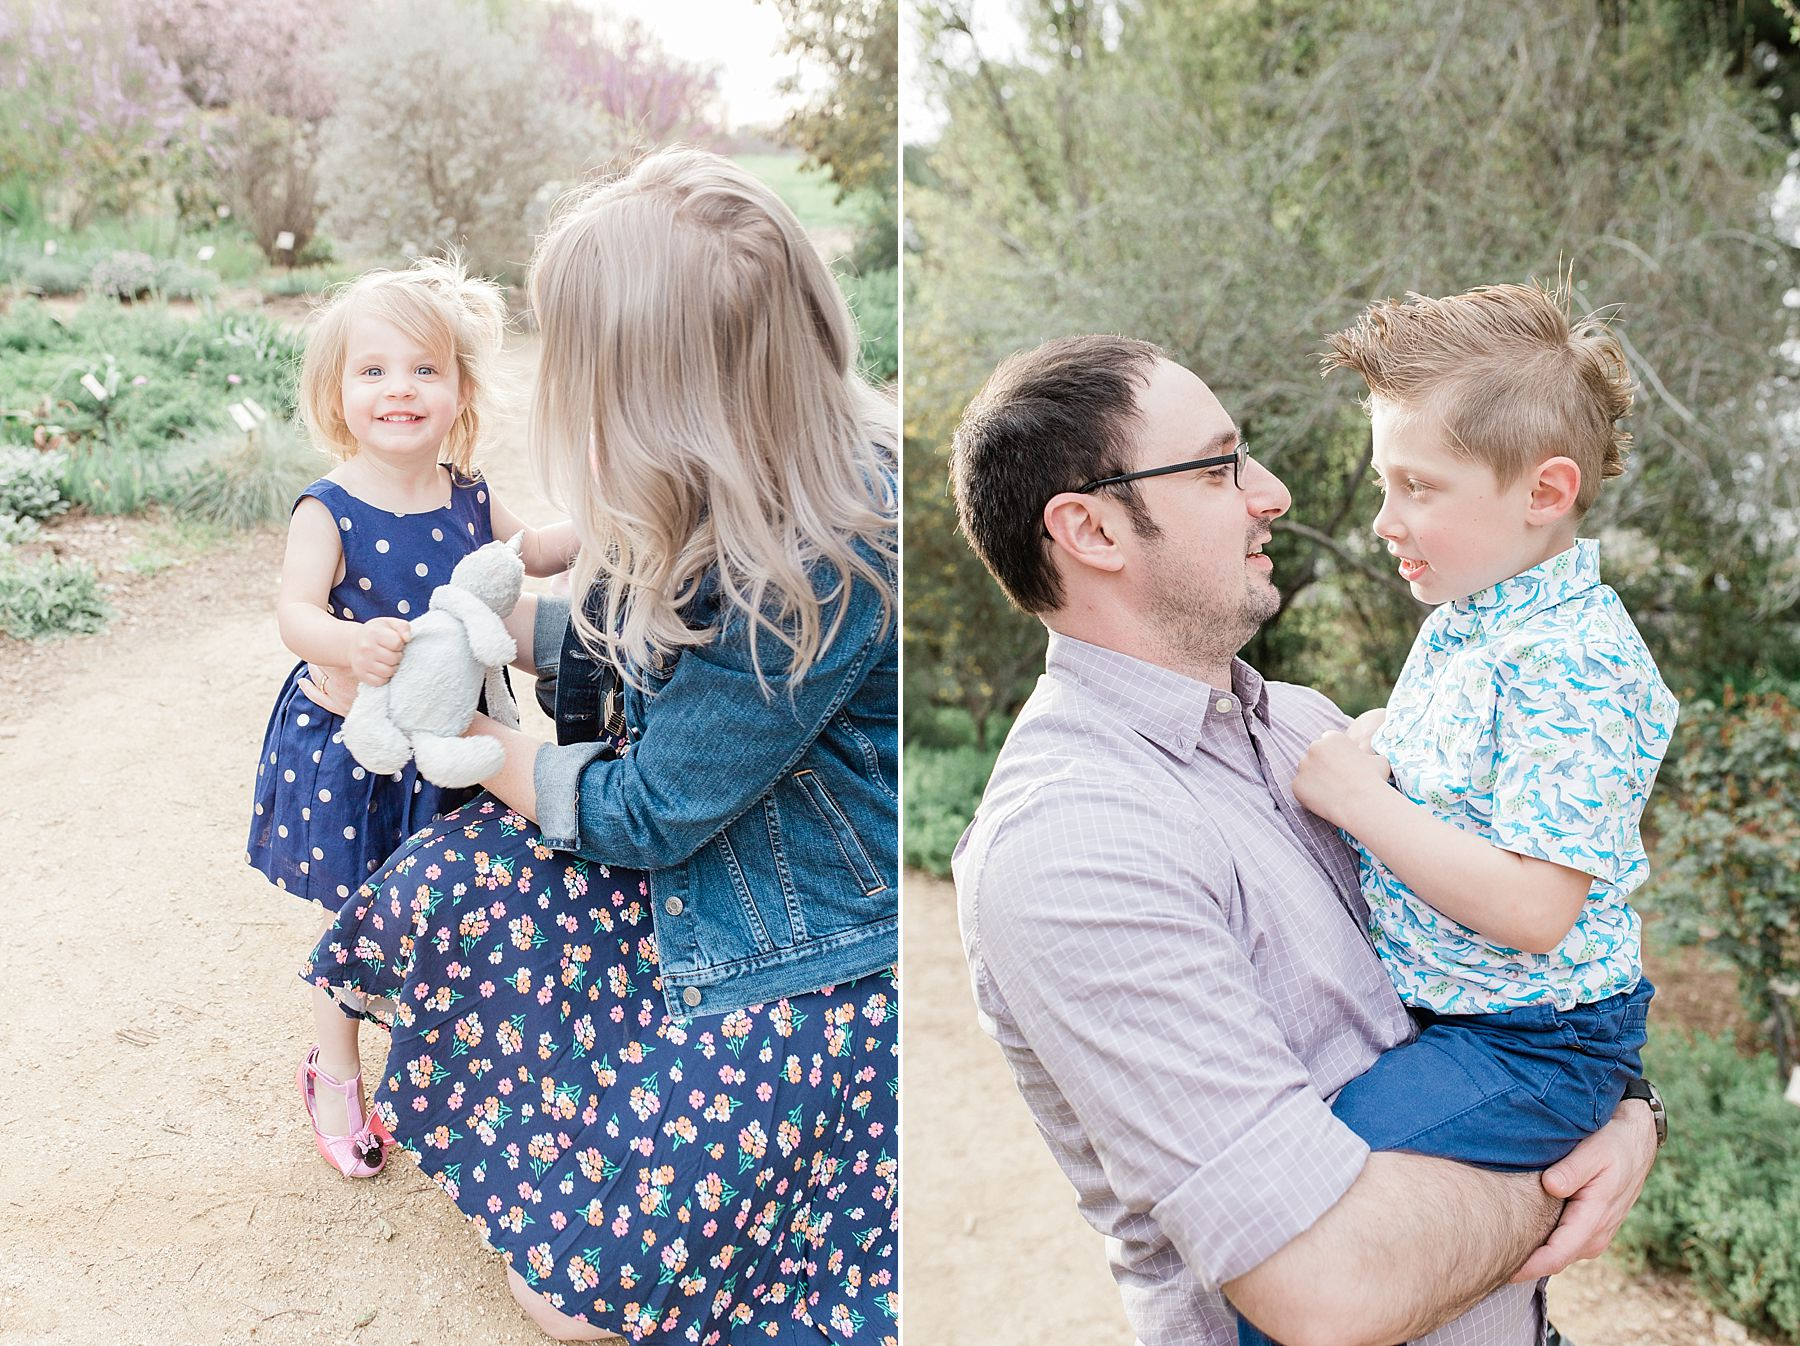 Davis Family Portraits at UC Davis Arboretum - Padovani Family - Ashley Baumgartner - Davis Family Photographer_0004.jpg